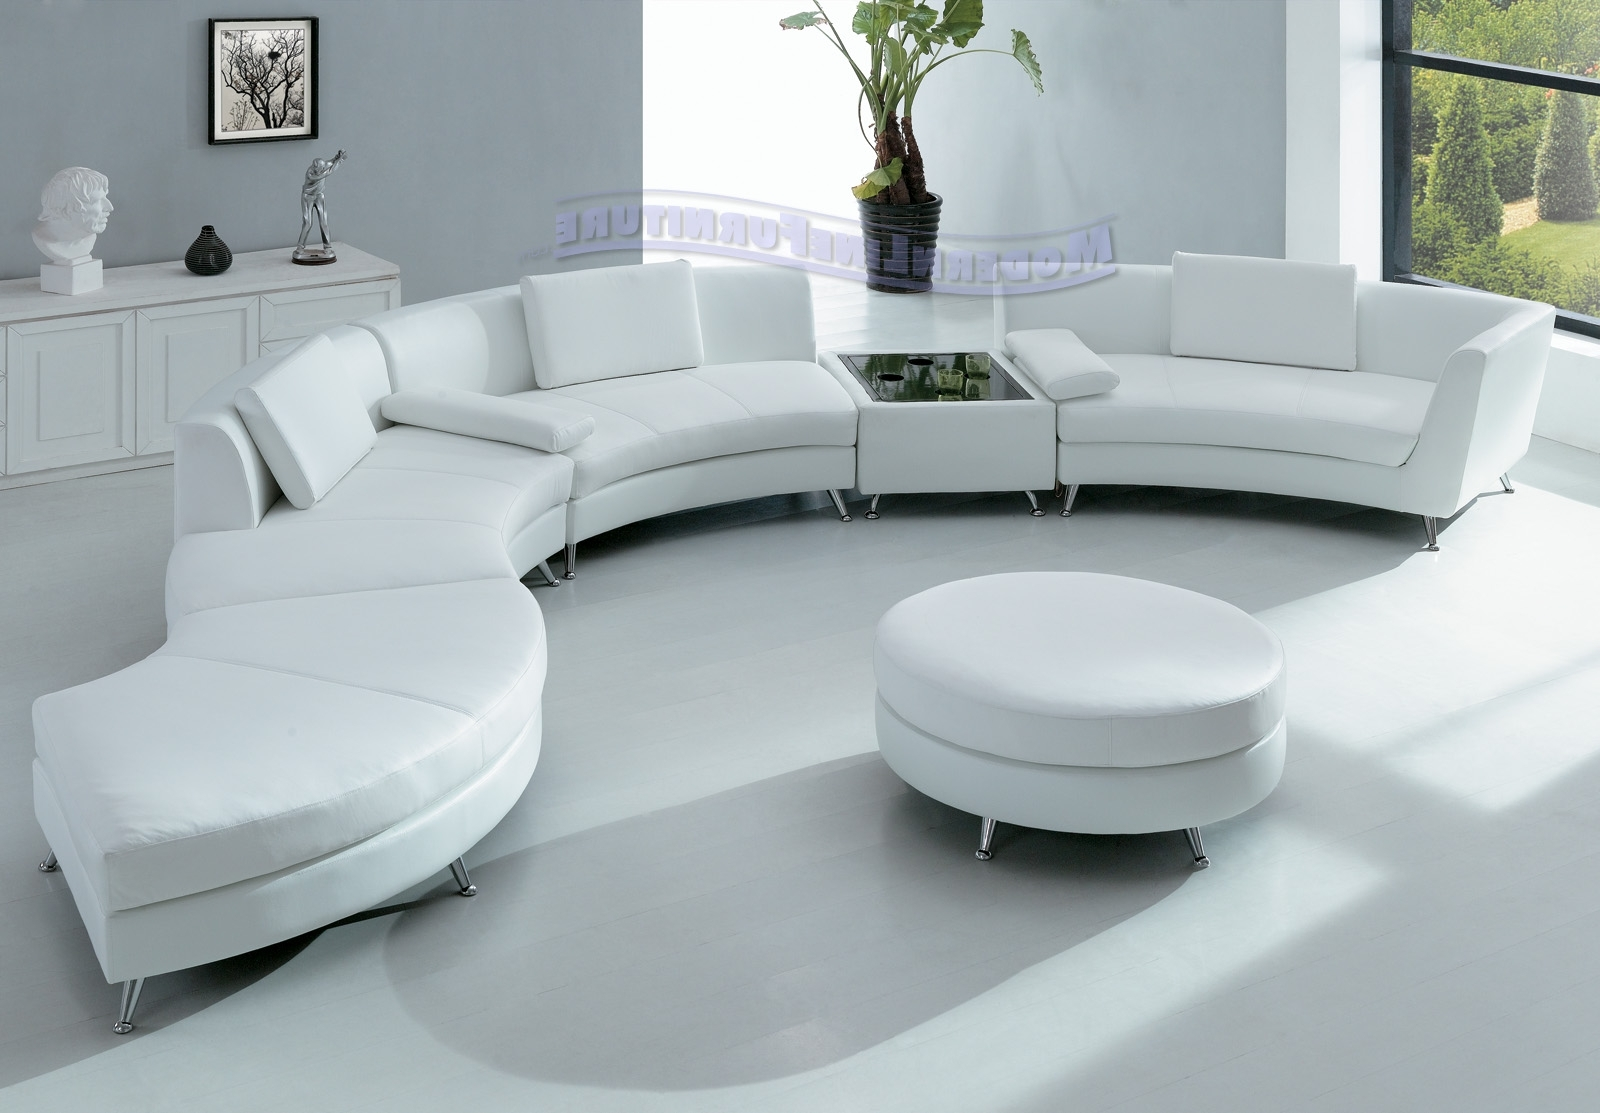 2019 Coffee Table : Couches For Sale Ottawa Living Room Furniture With Regard To Sectional Sofas At Brampton (View 14 of 20)